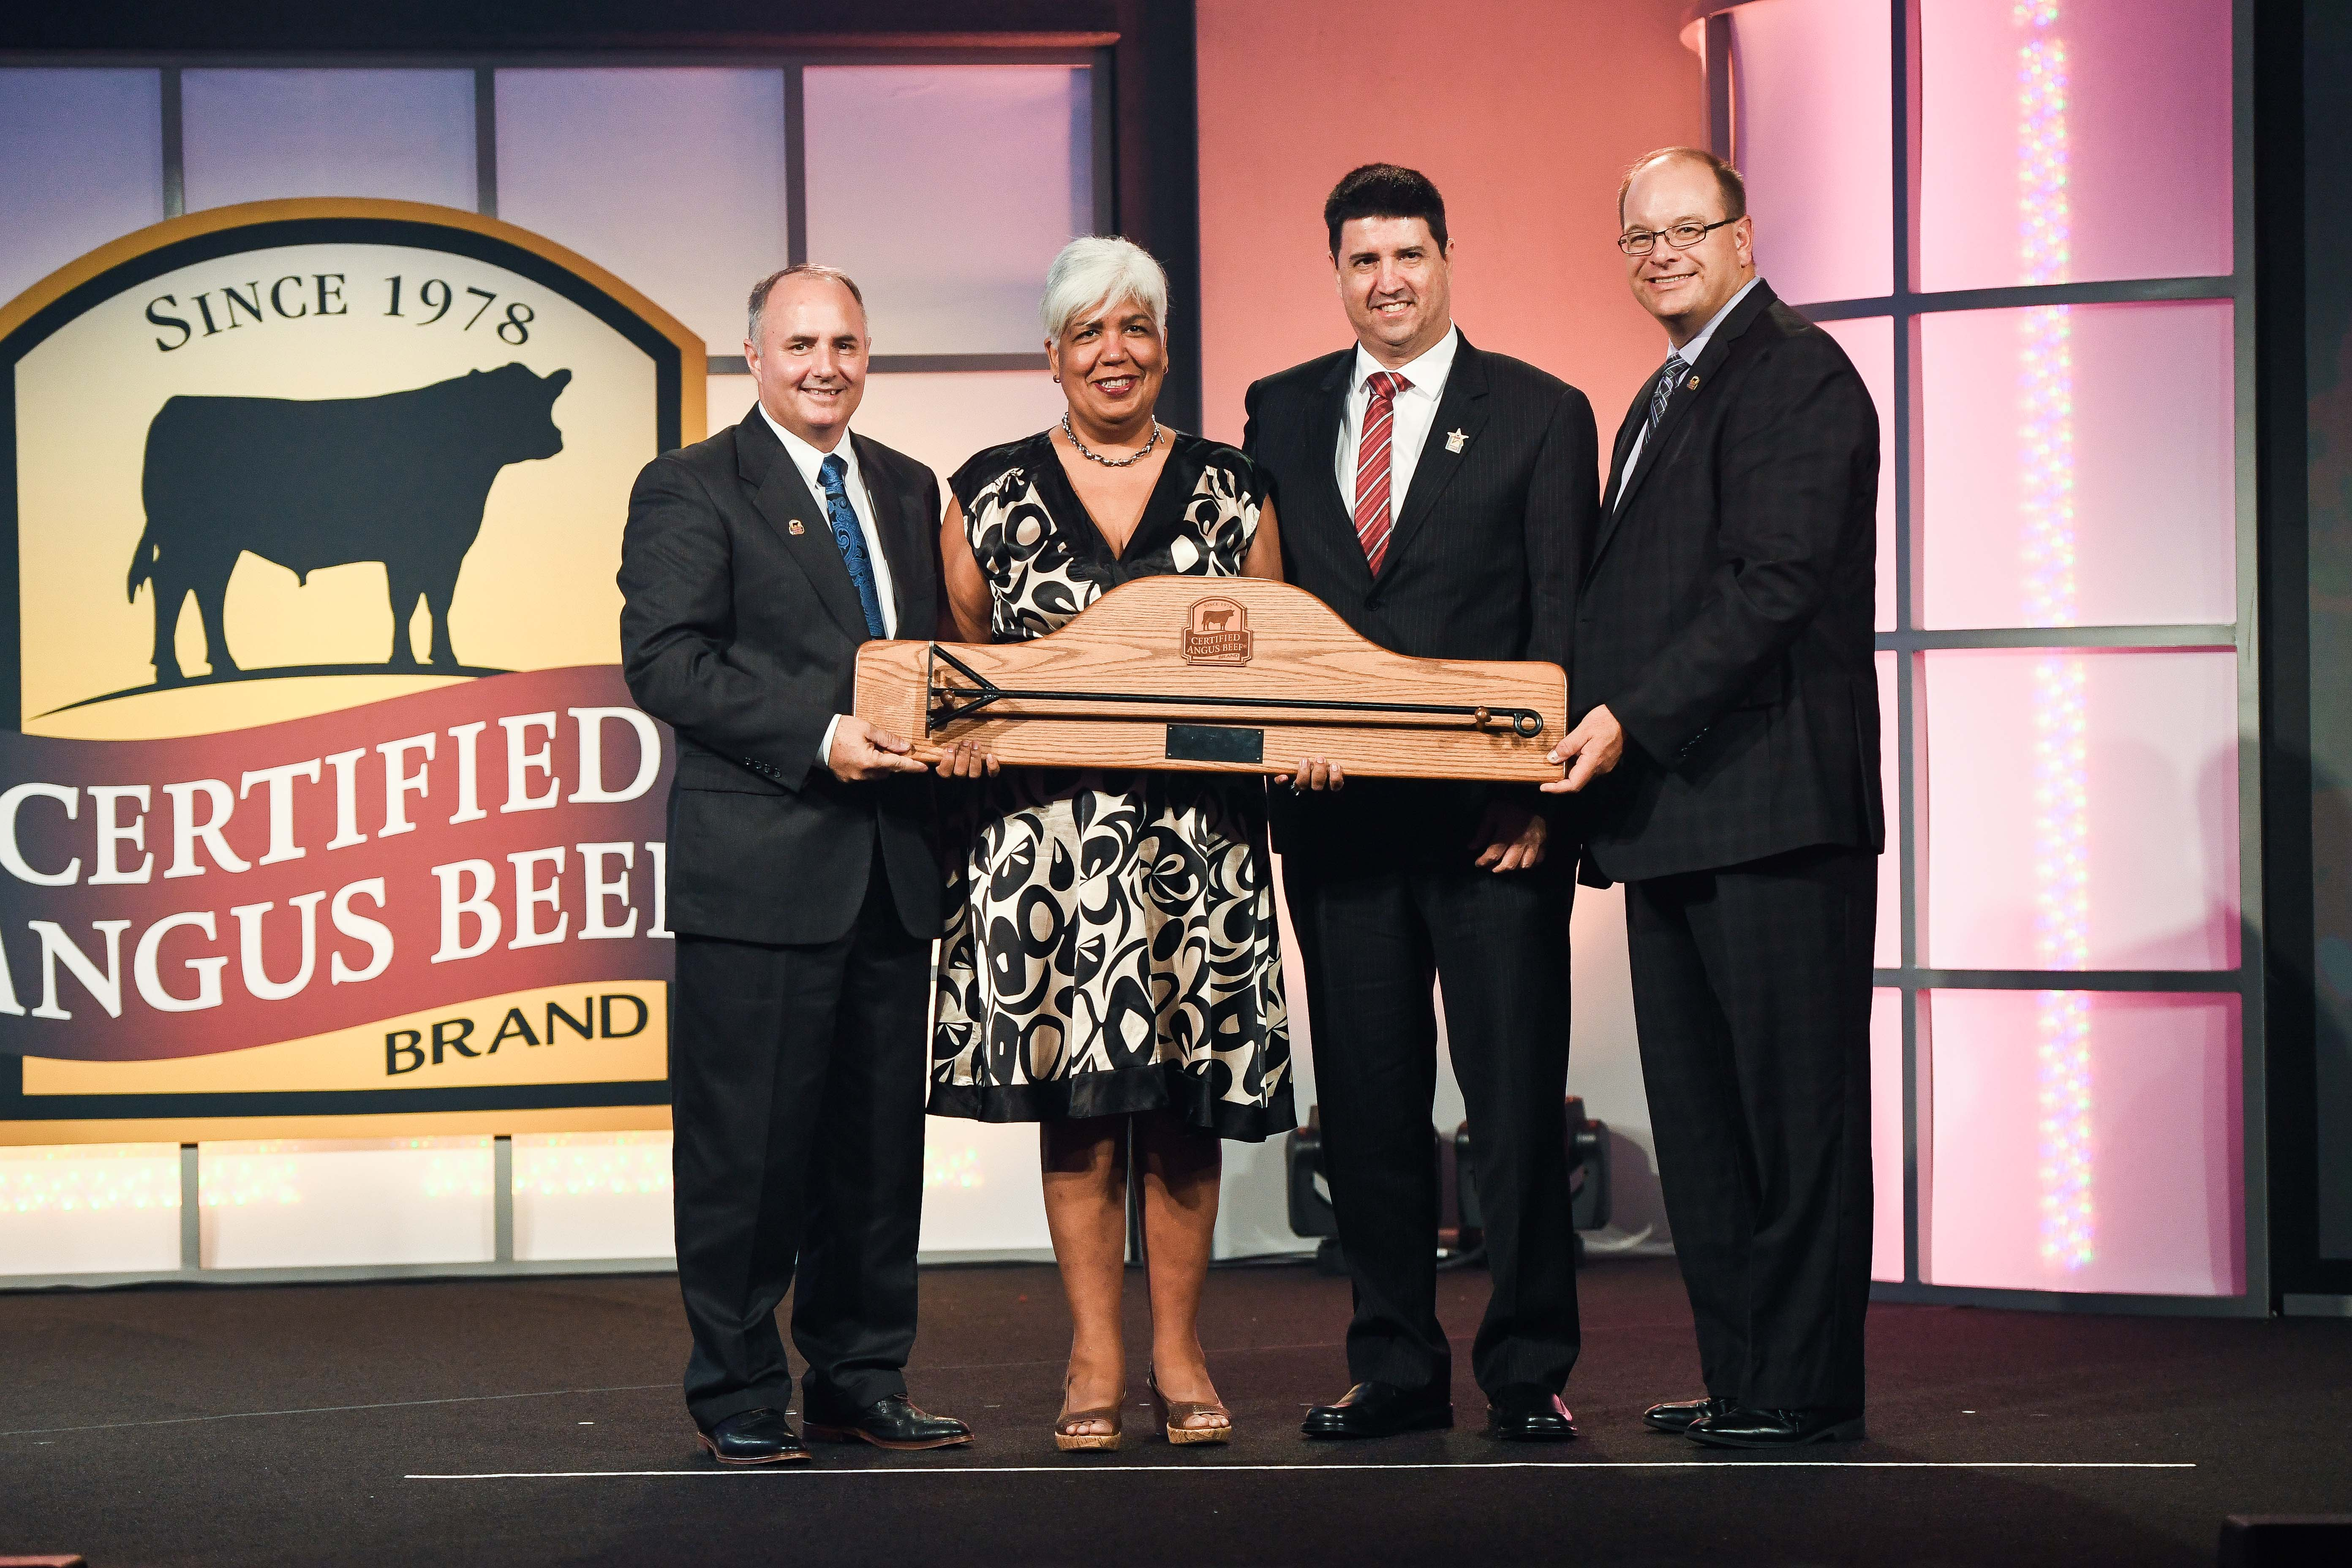 Premio Certified Angus Beef